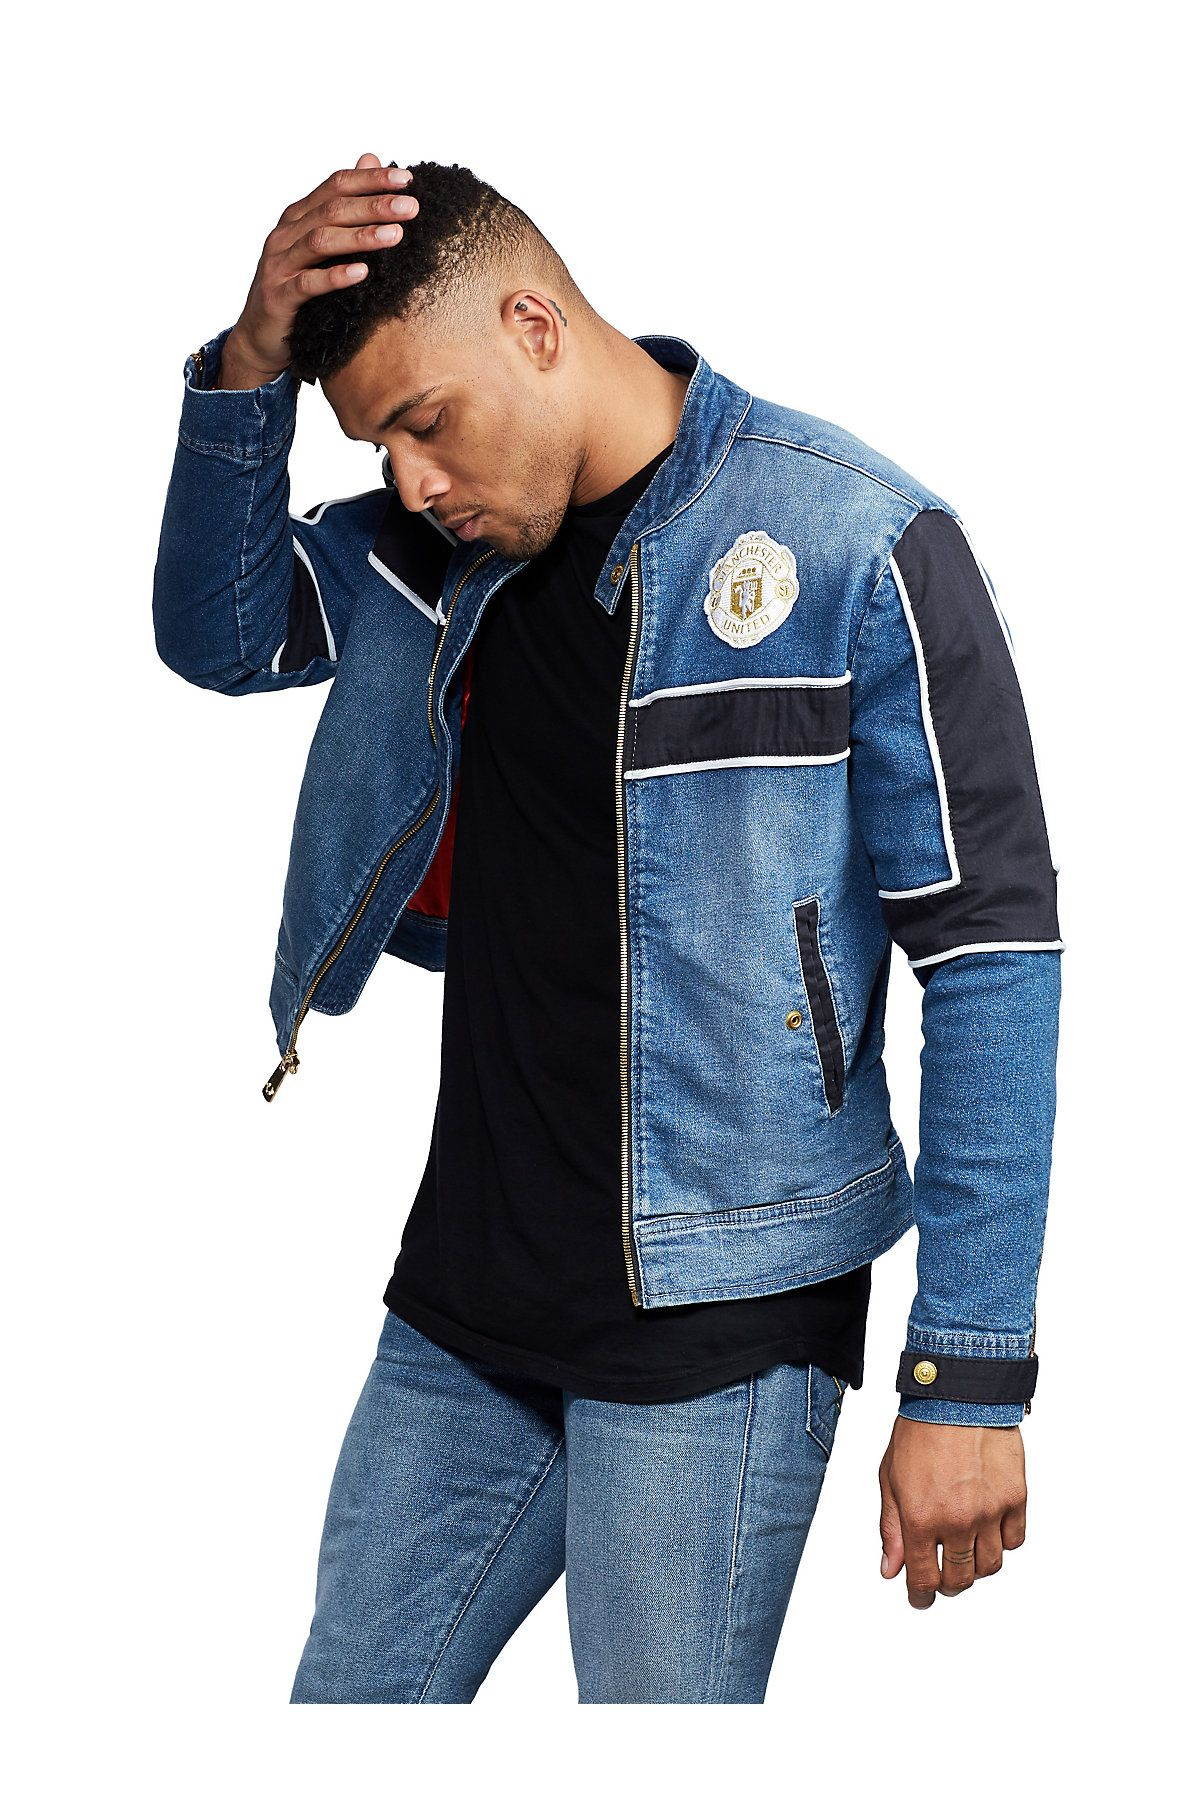 TR X MANCHESTER UNITED DENIM MOTO JACKET (With images